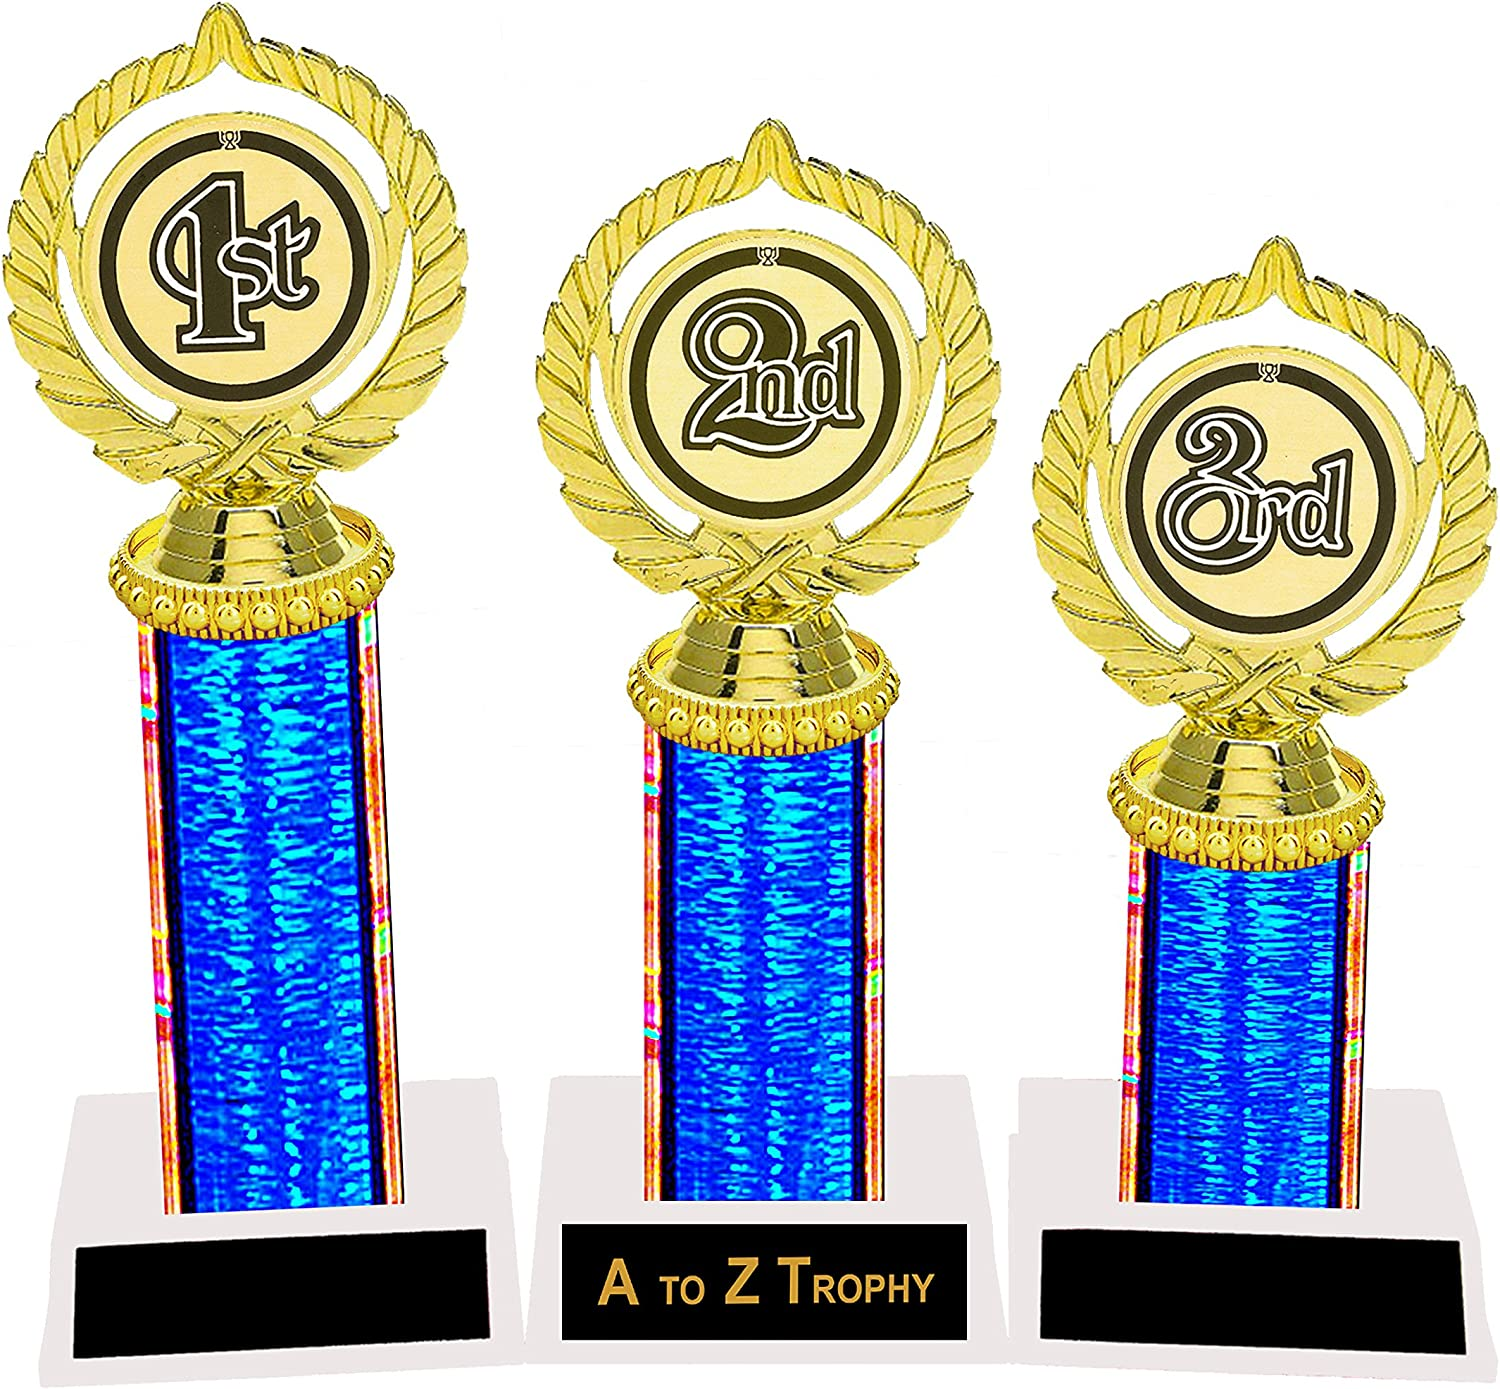 Gold and Red Star Cups Achievement Trophies Awards 4 Sizes Free engraving